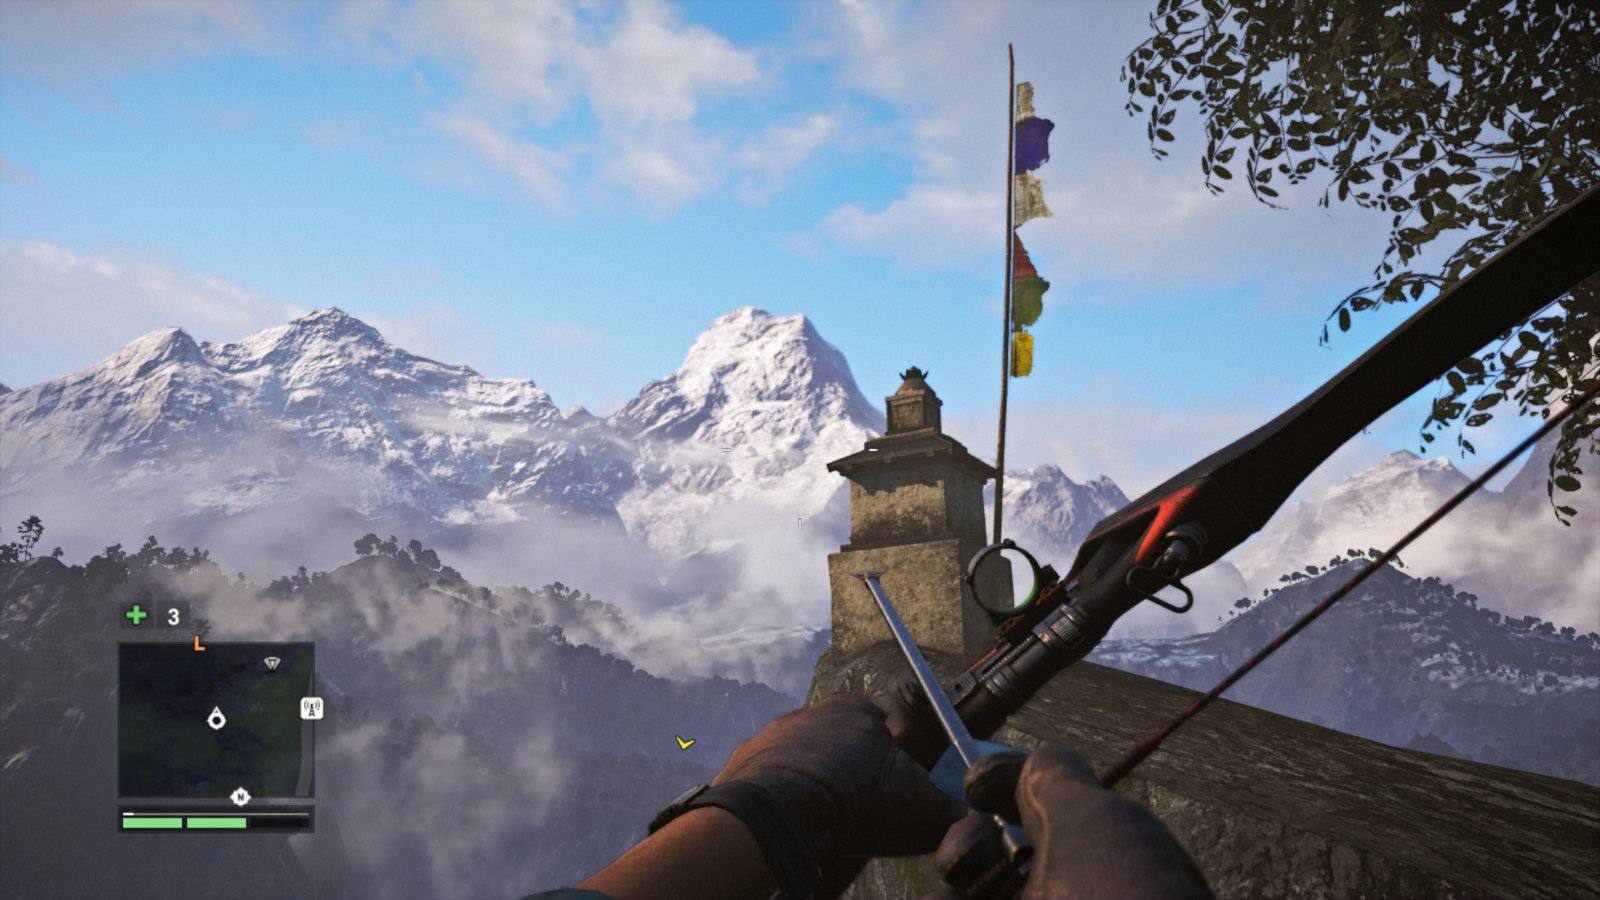 The best video games to inspire travel - get a taste of Nepal while playing Far Cry 4, which is set in the fictional Himalayan country of Kyrat.